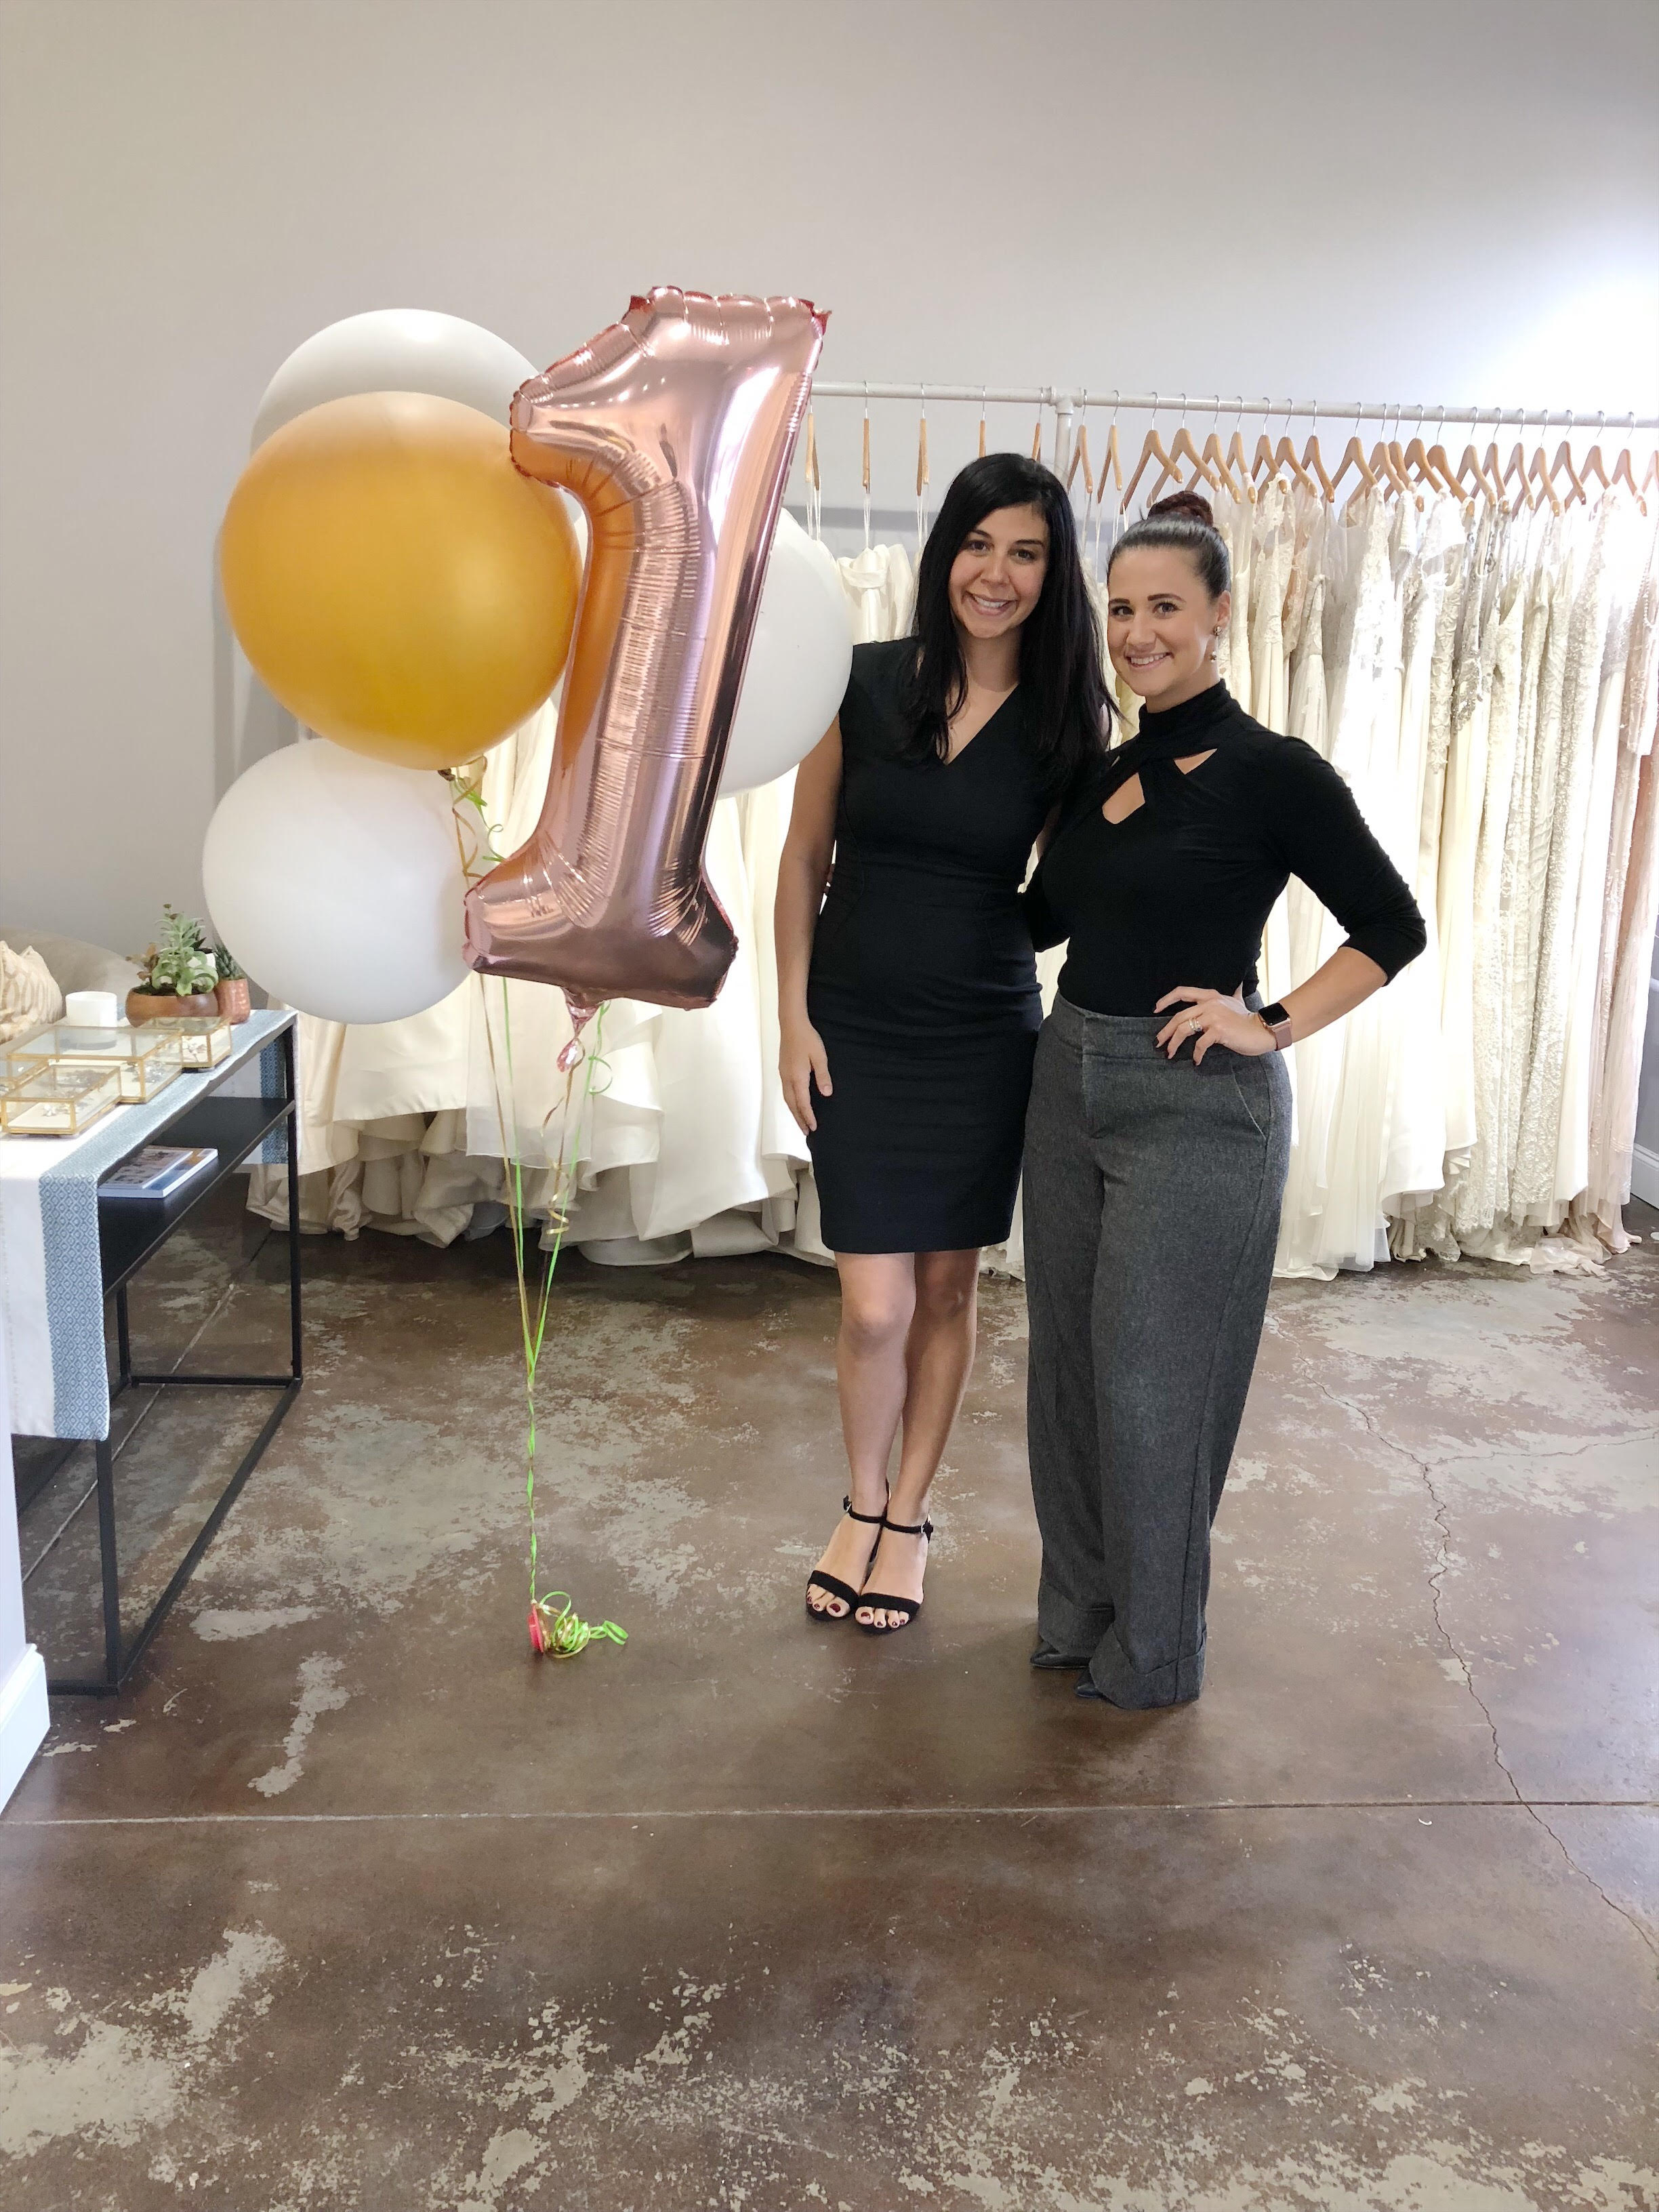 On year later, on november 20, 2018, Tali & Roberta are celebrating their first year of success! Congrats ladies!